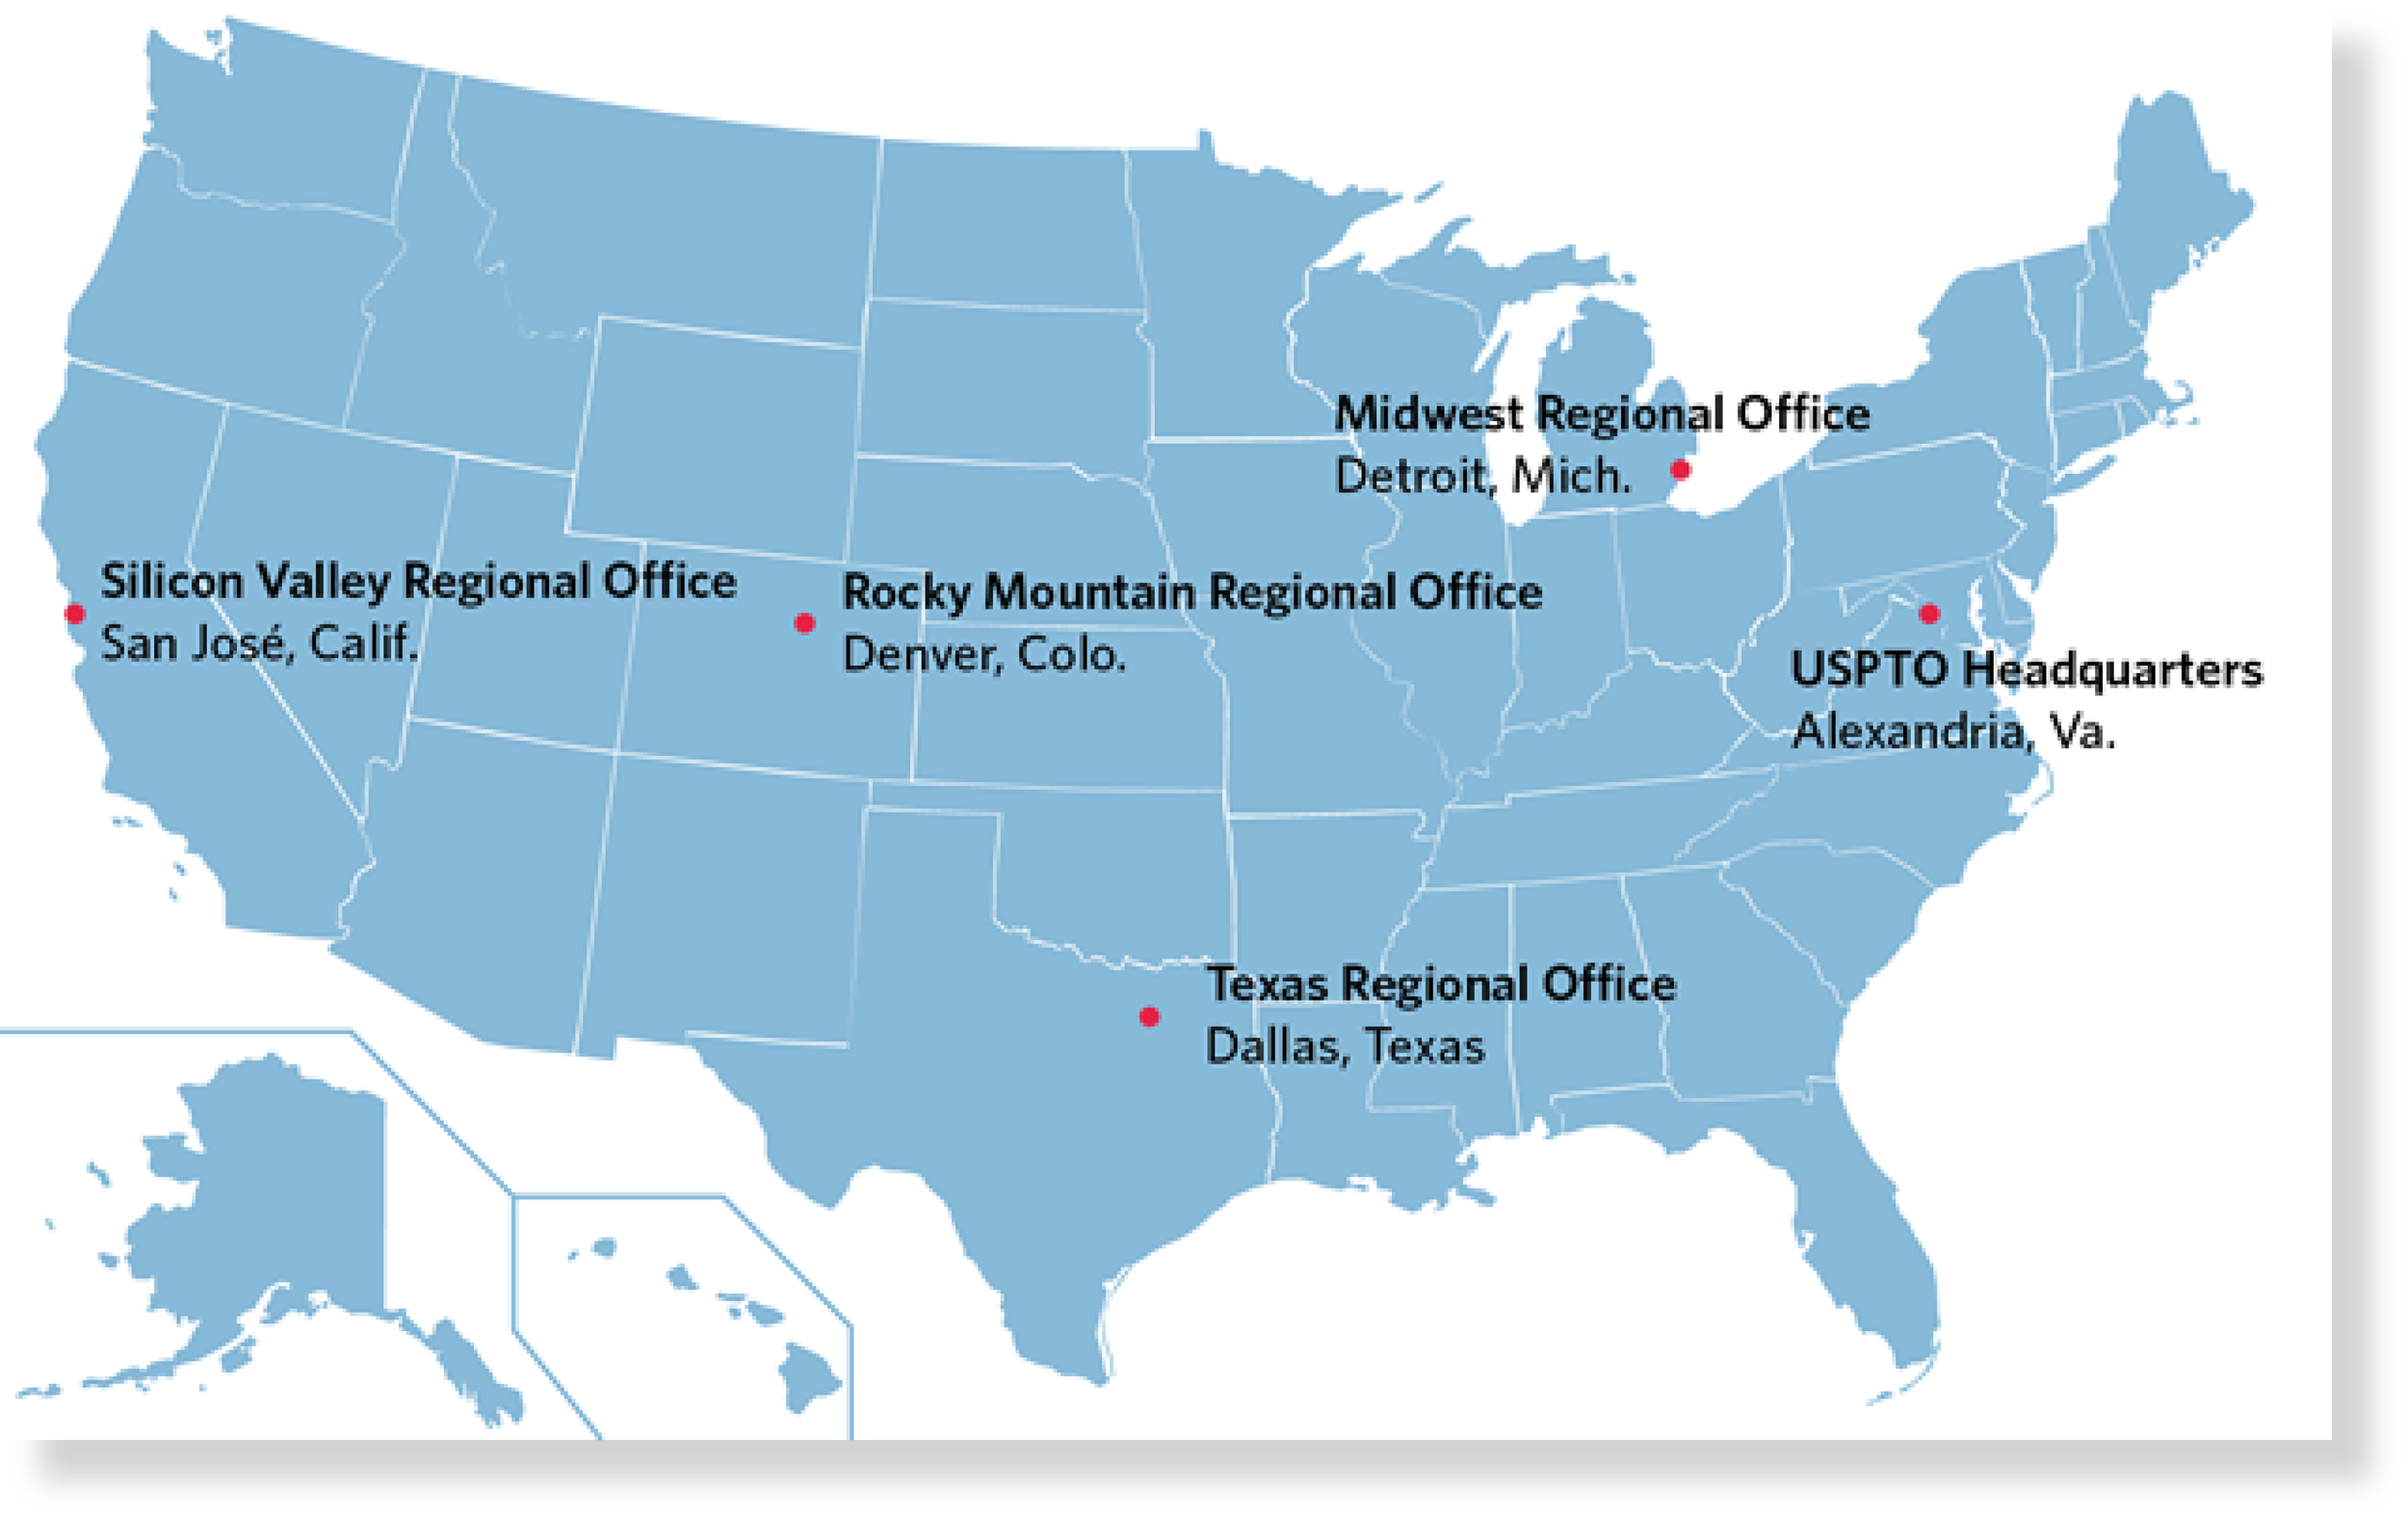 http://www.uspto.gov/about-us/uspto-office-locations